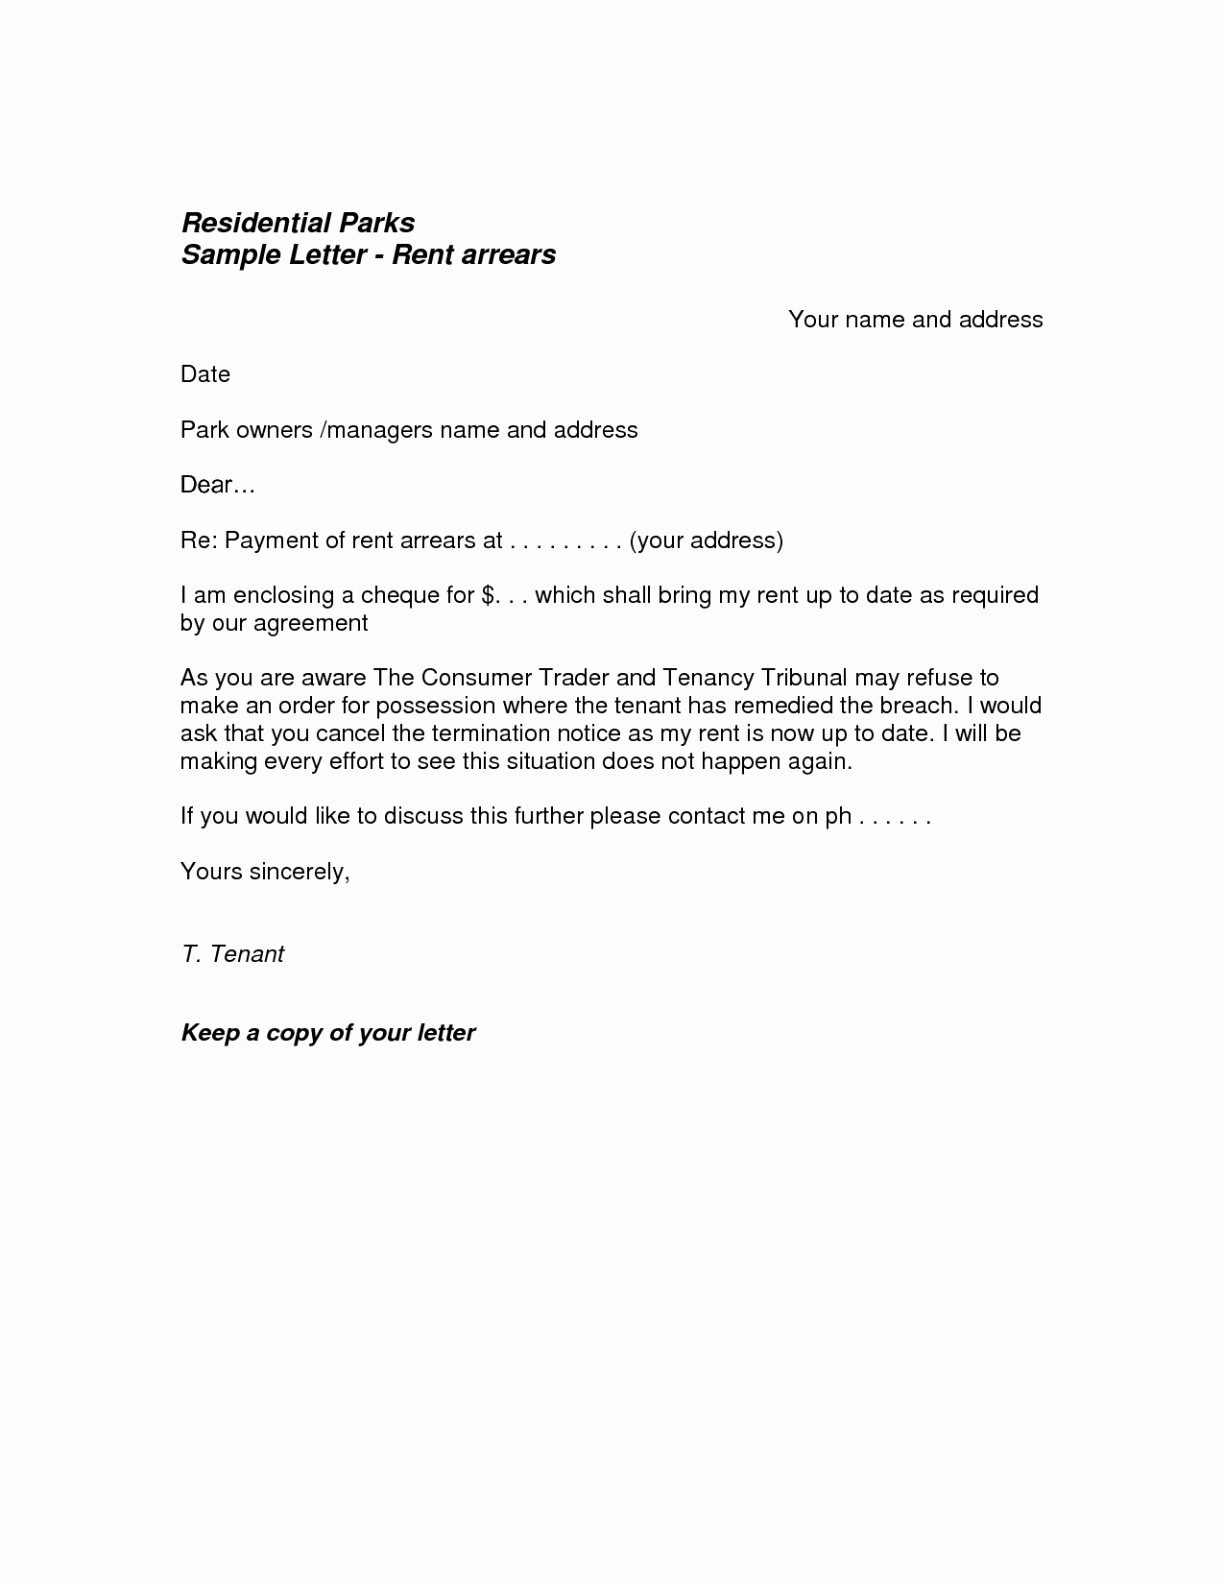 Termination Of Rental Agreement Letter Template - Letter format for Agreement Termination Refrence Contract